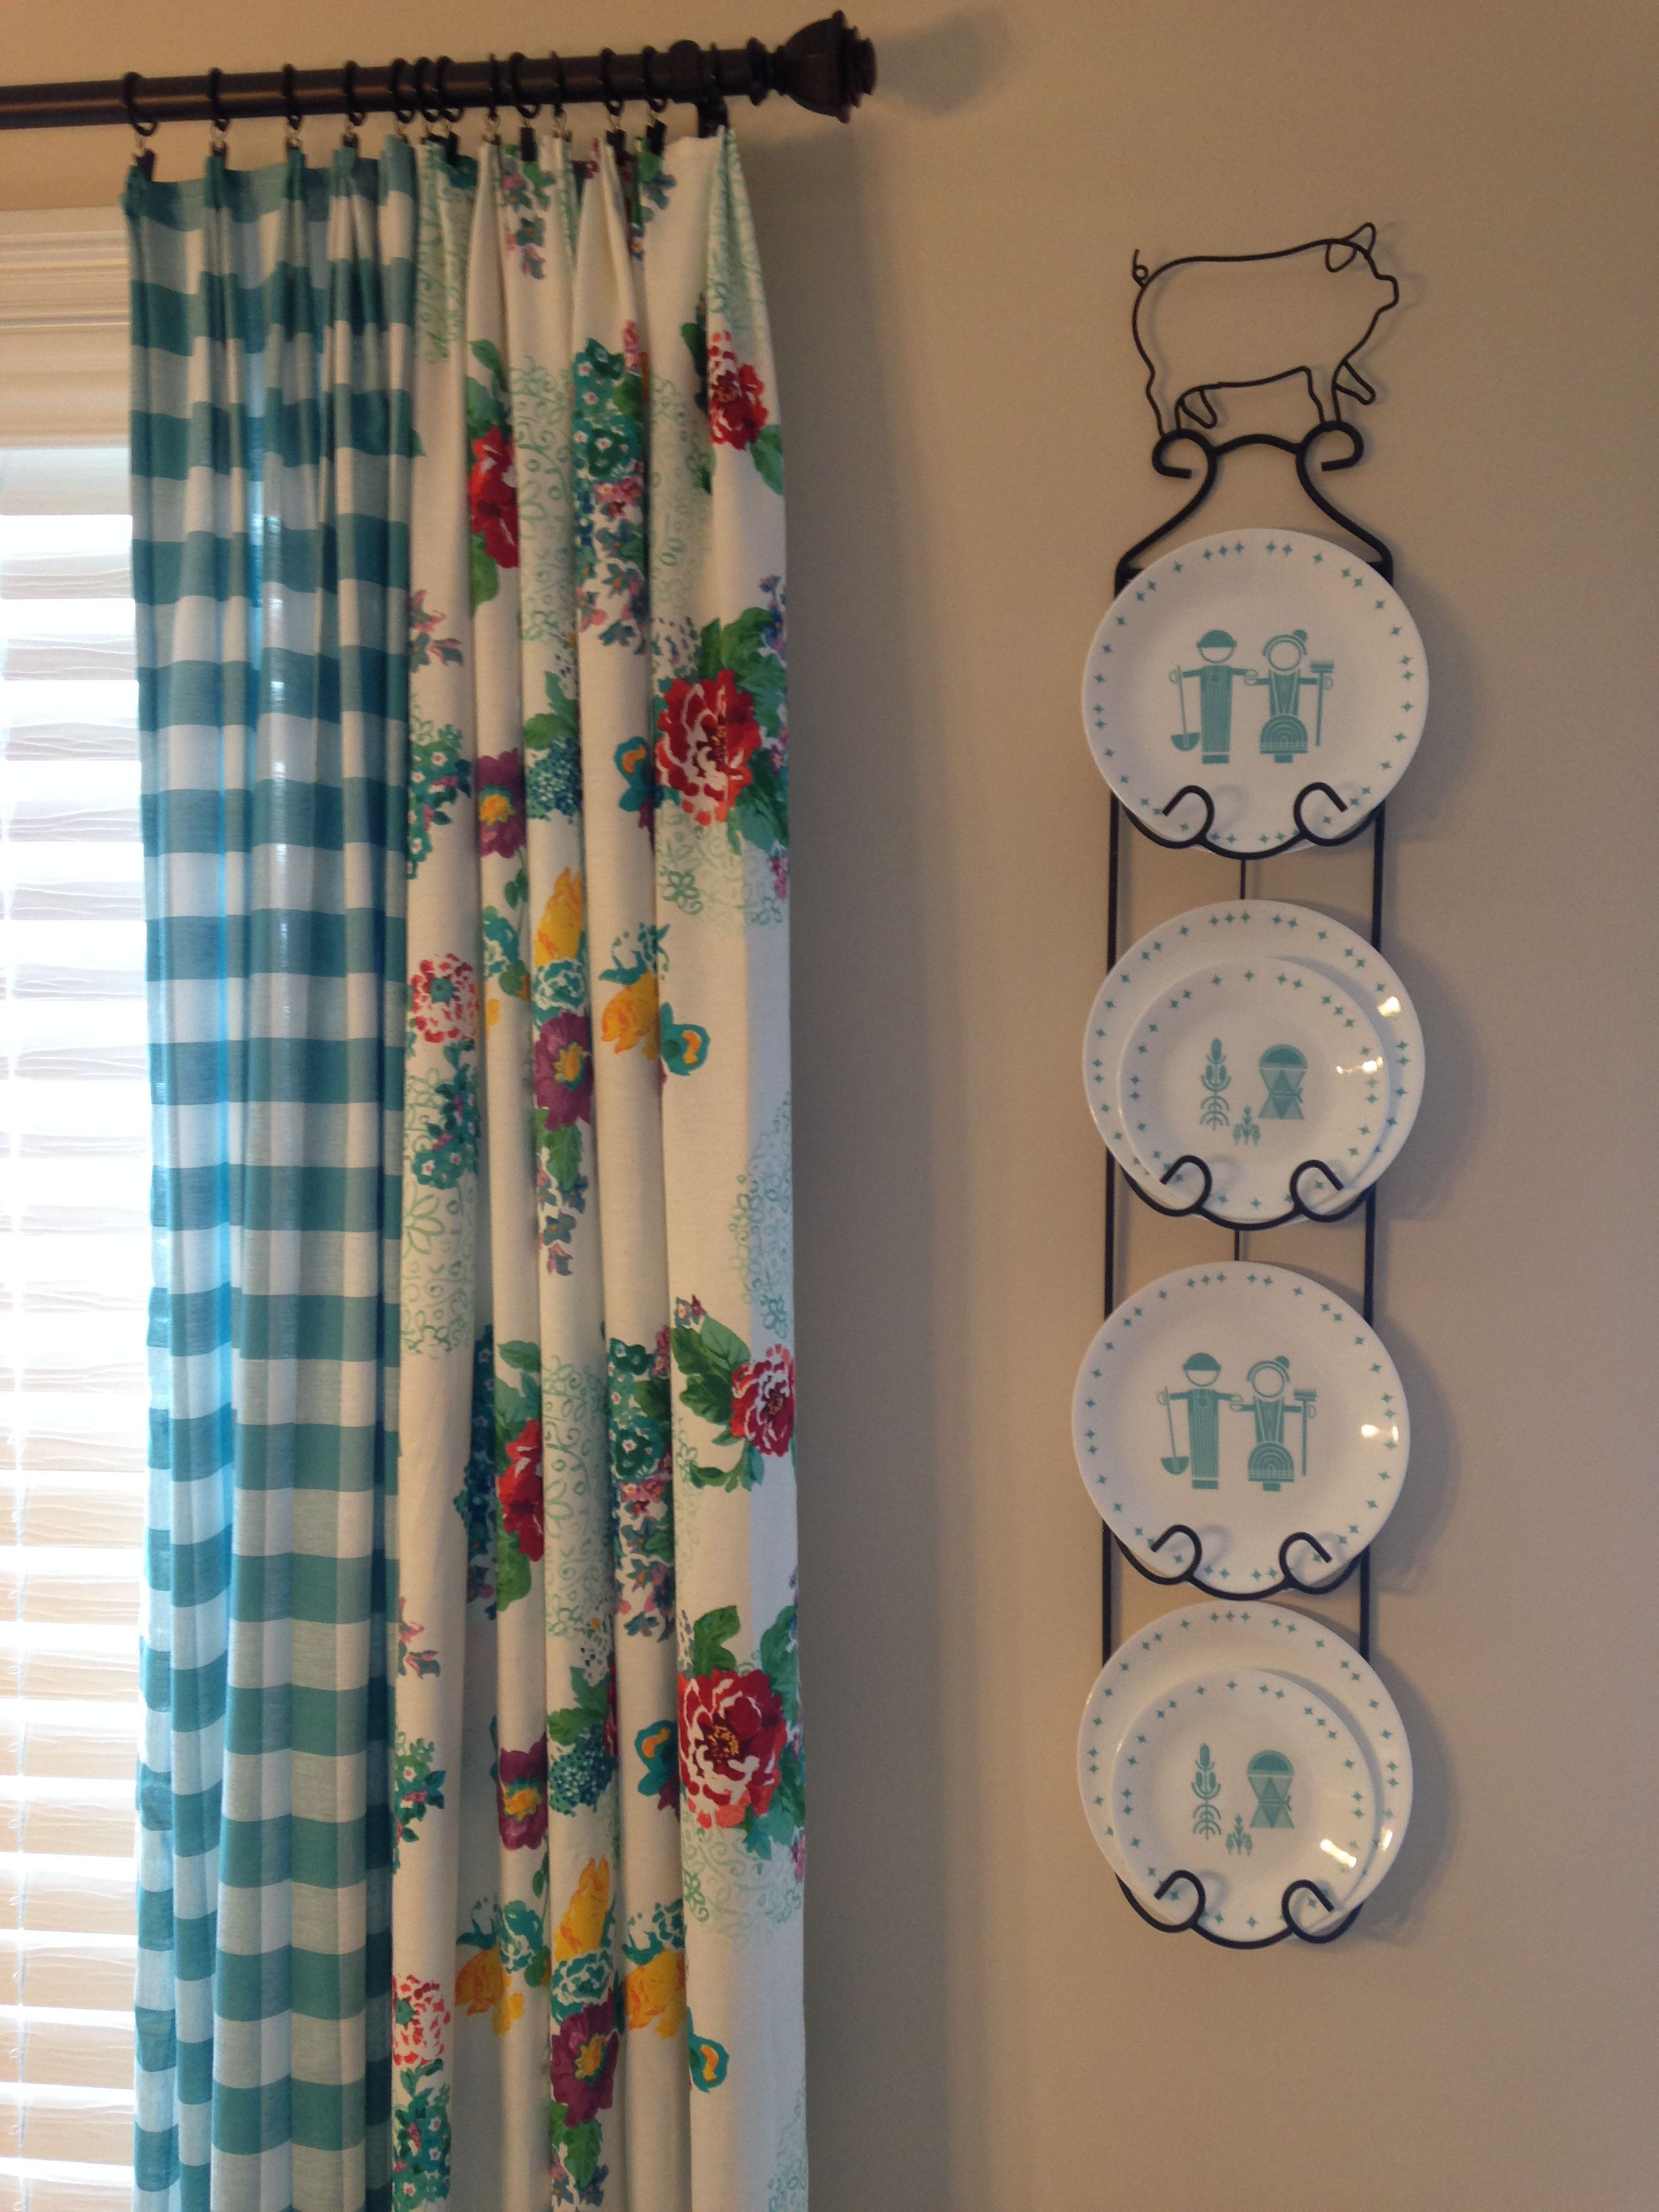 7 Nice Designs Of Kitchen Curtains The Heart Of Your Kitchen Pioneer Woman Kitchen Decor Pioneer Woman Kitchen Shabby Chic Kitchen